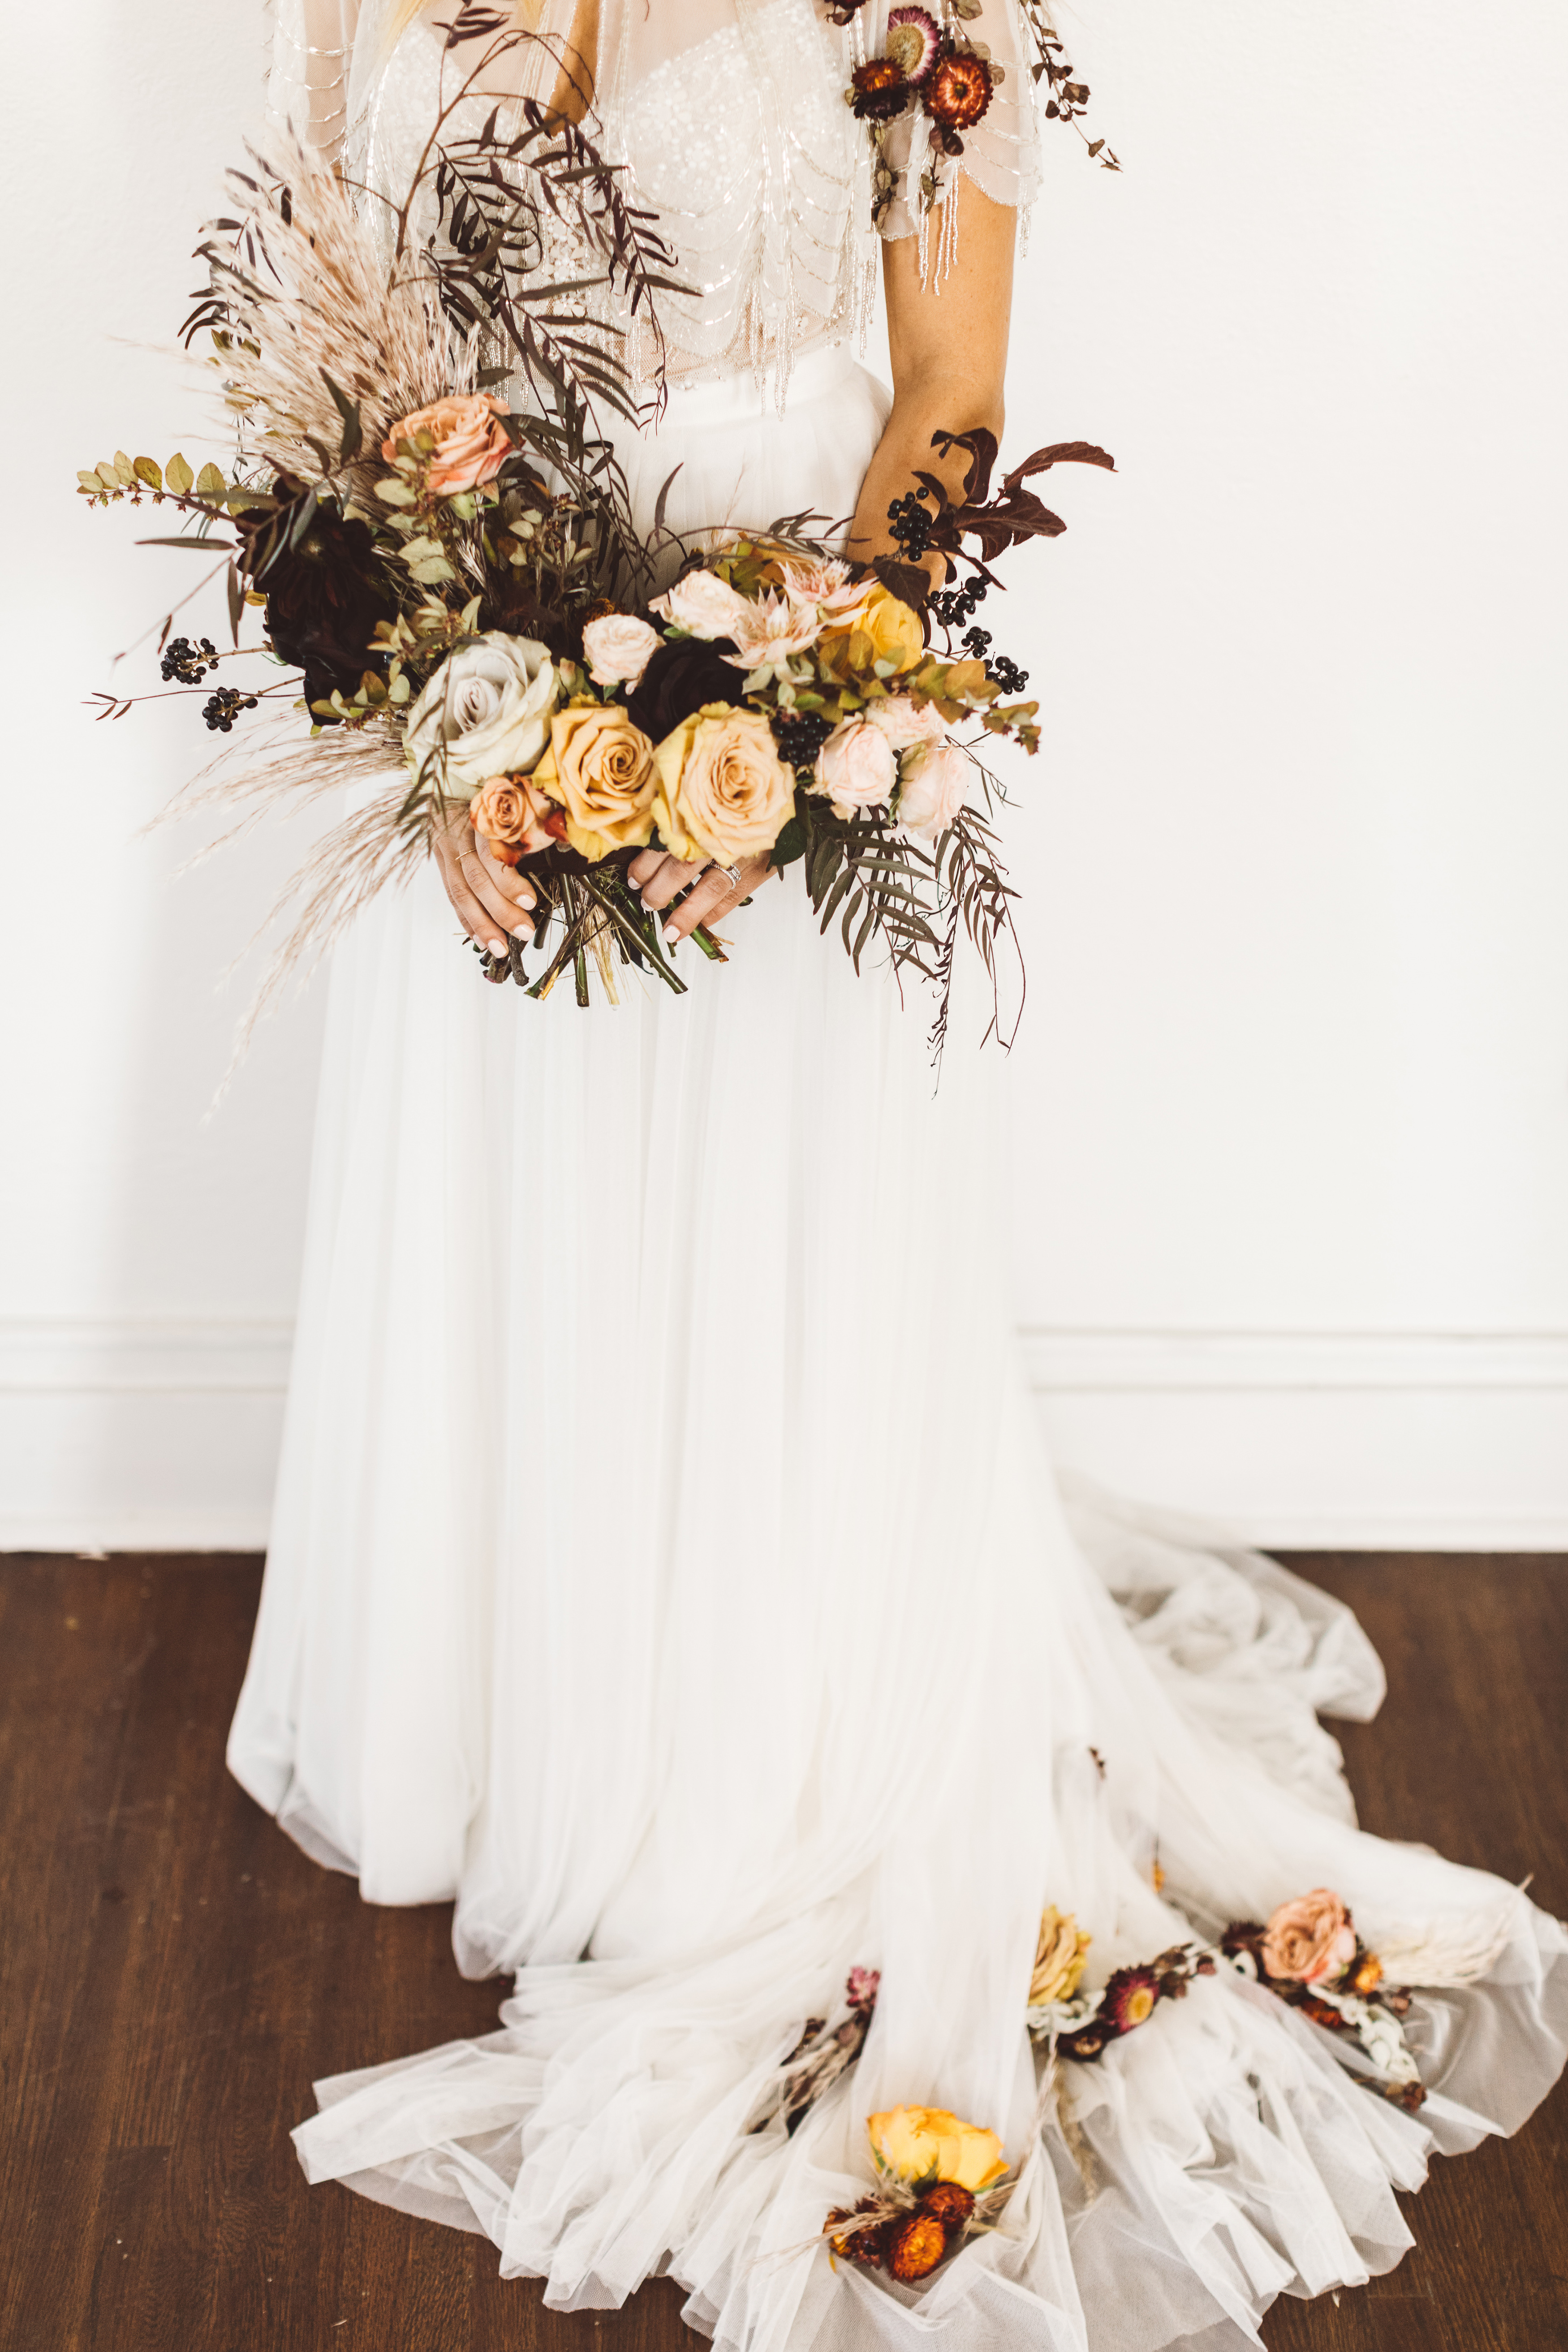 Wispy, Muted Bouquet with Pampas Grass and Roses